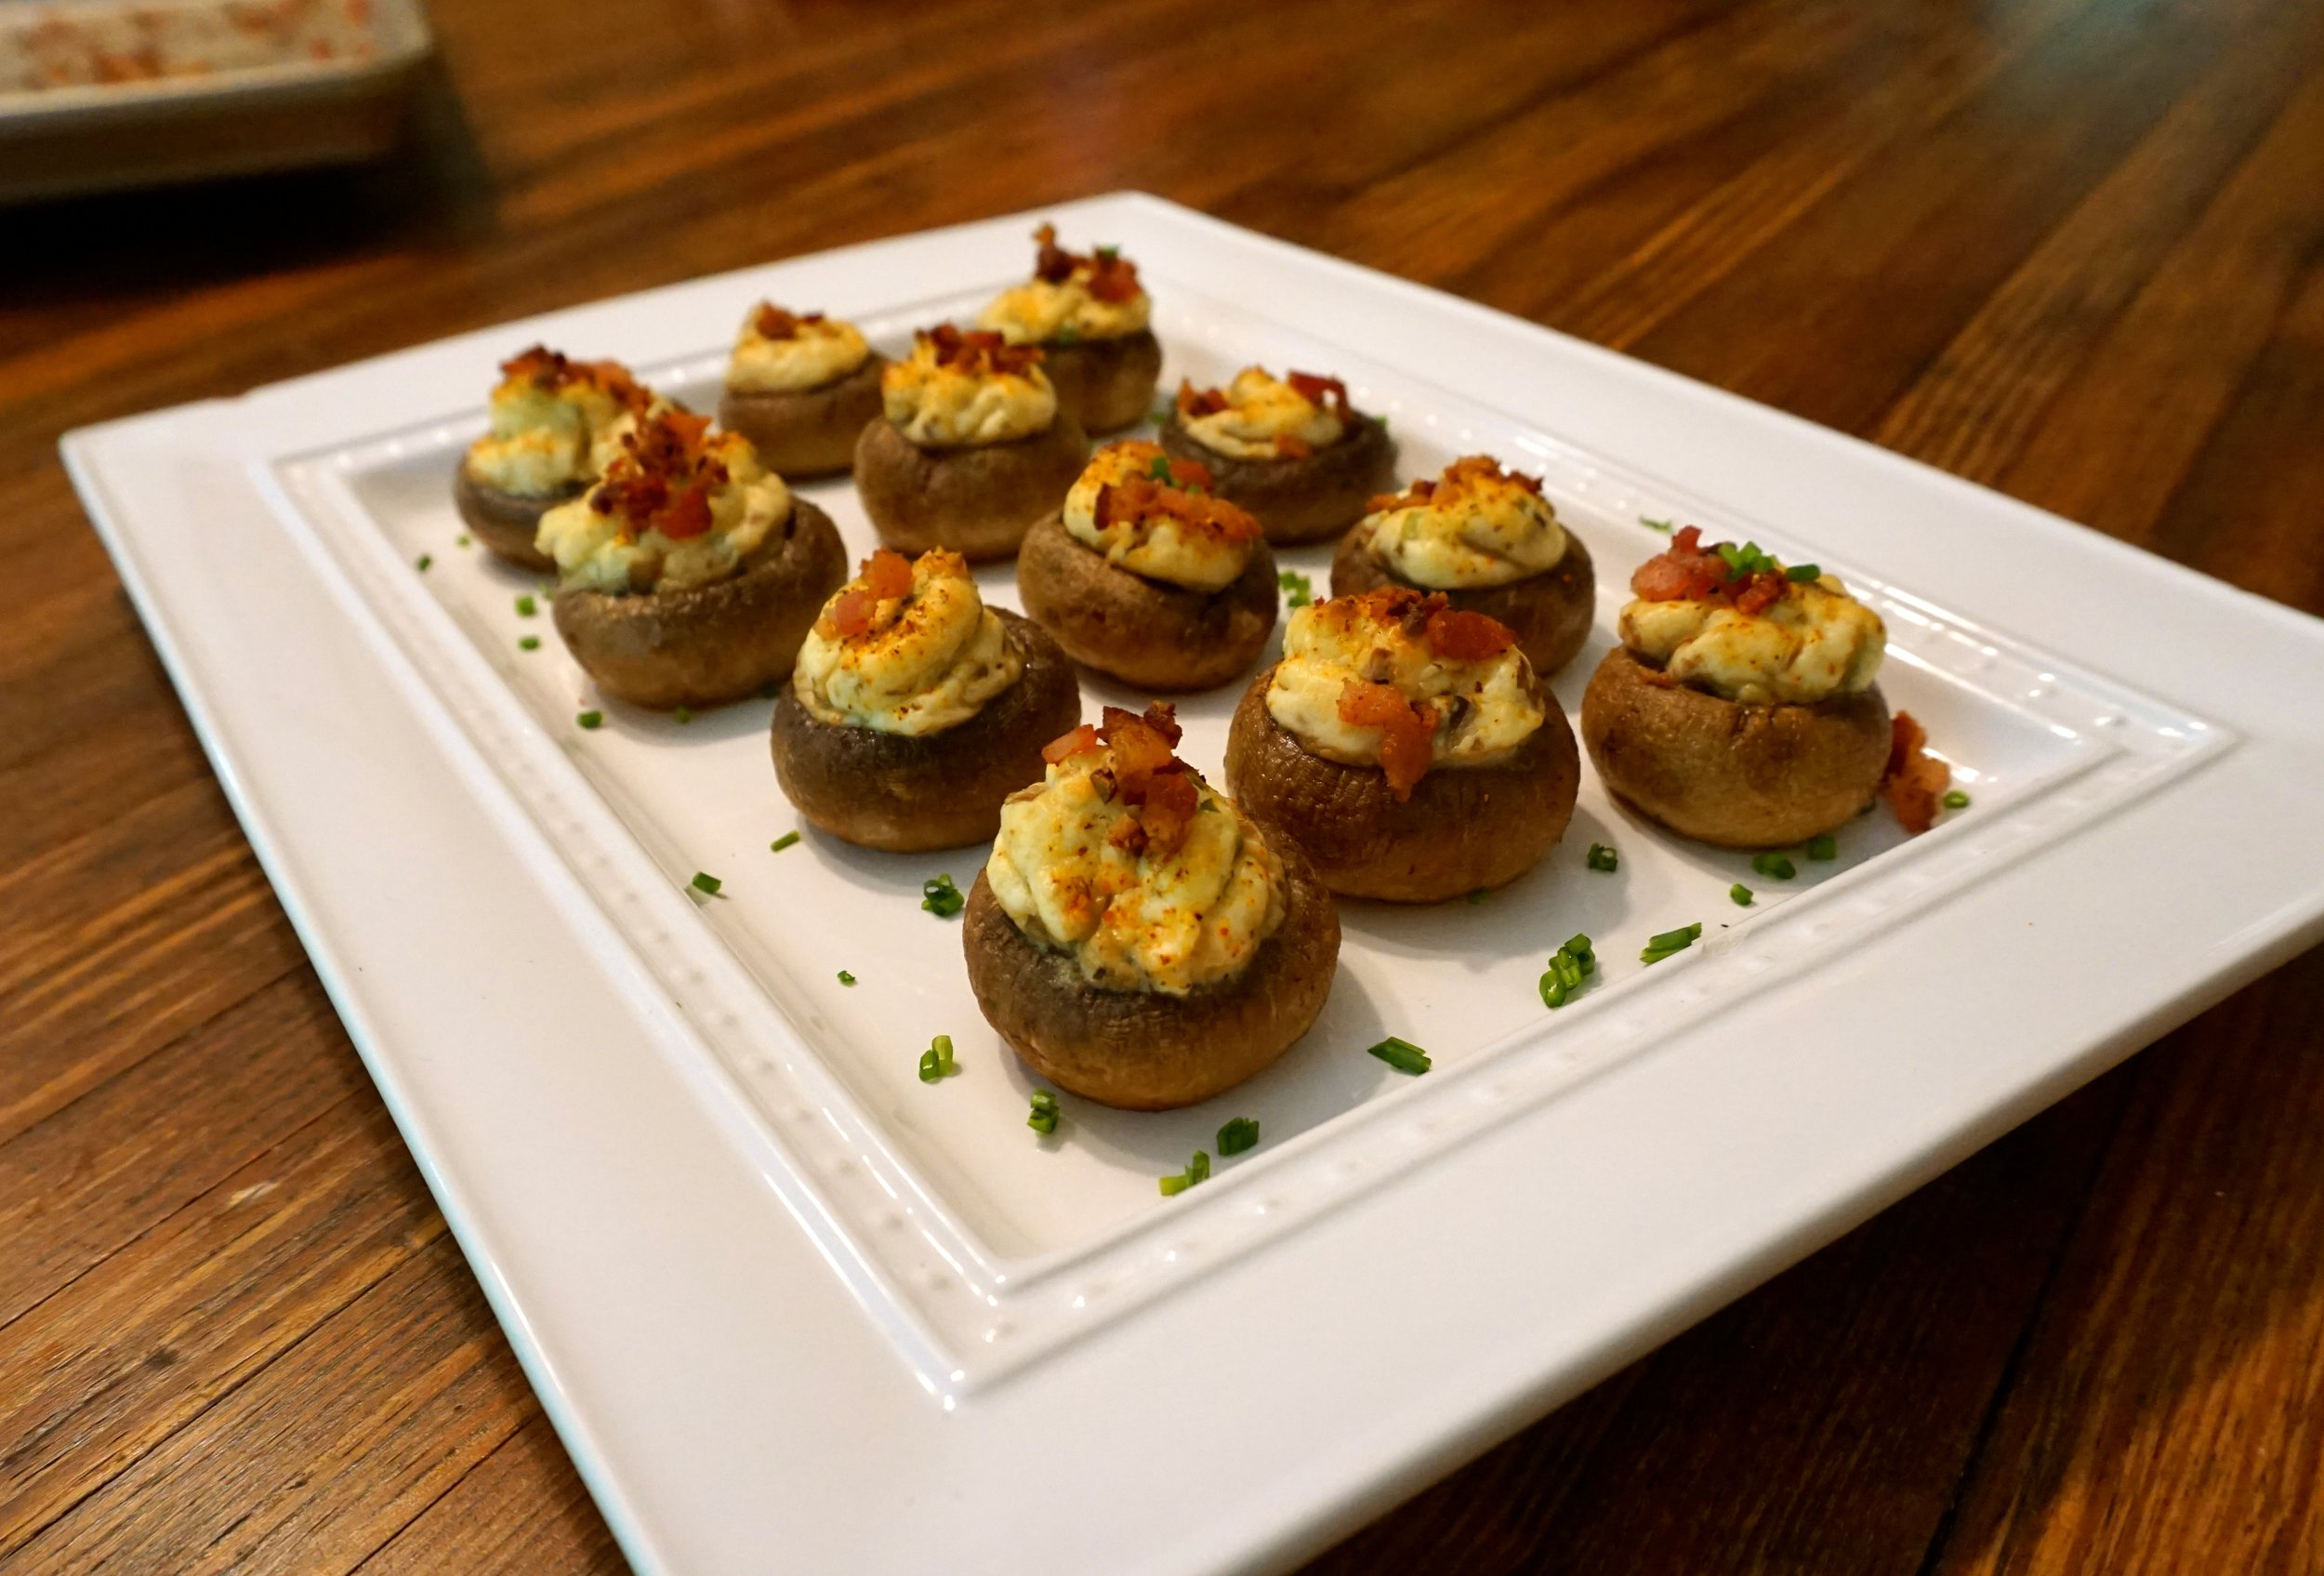 Cream Cheese Stuffed Mushrooms - These are a great starter for any event and are guaranteed to get you compliments. What doesn't taste amazing if it has cream cheese in it?